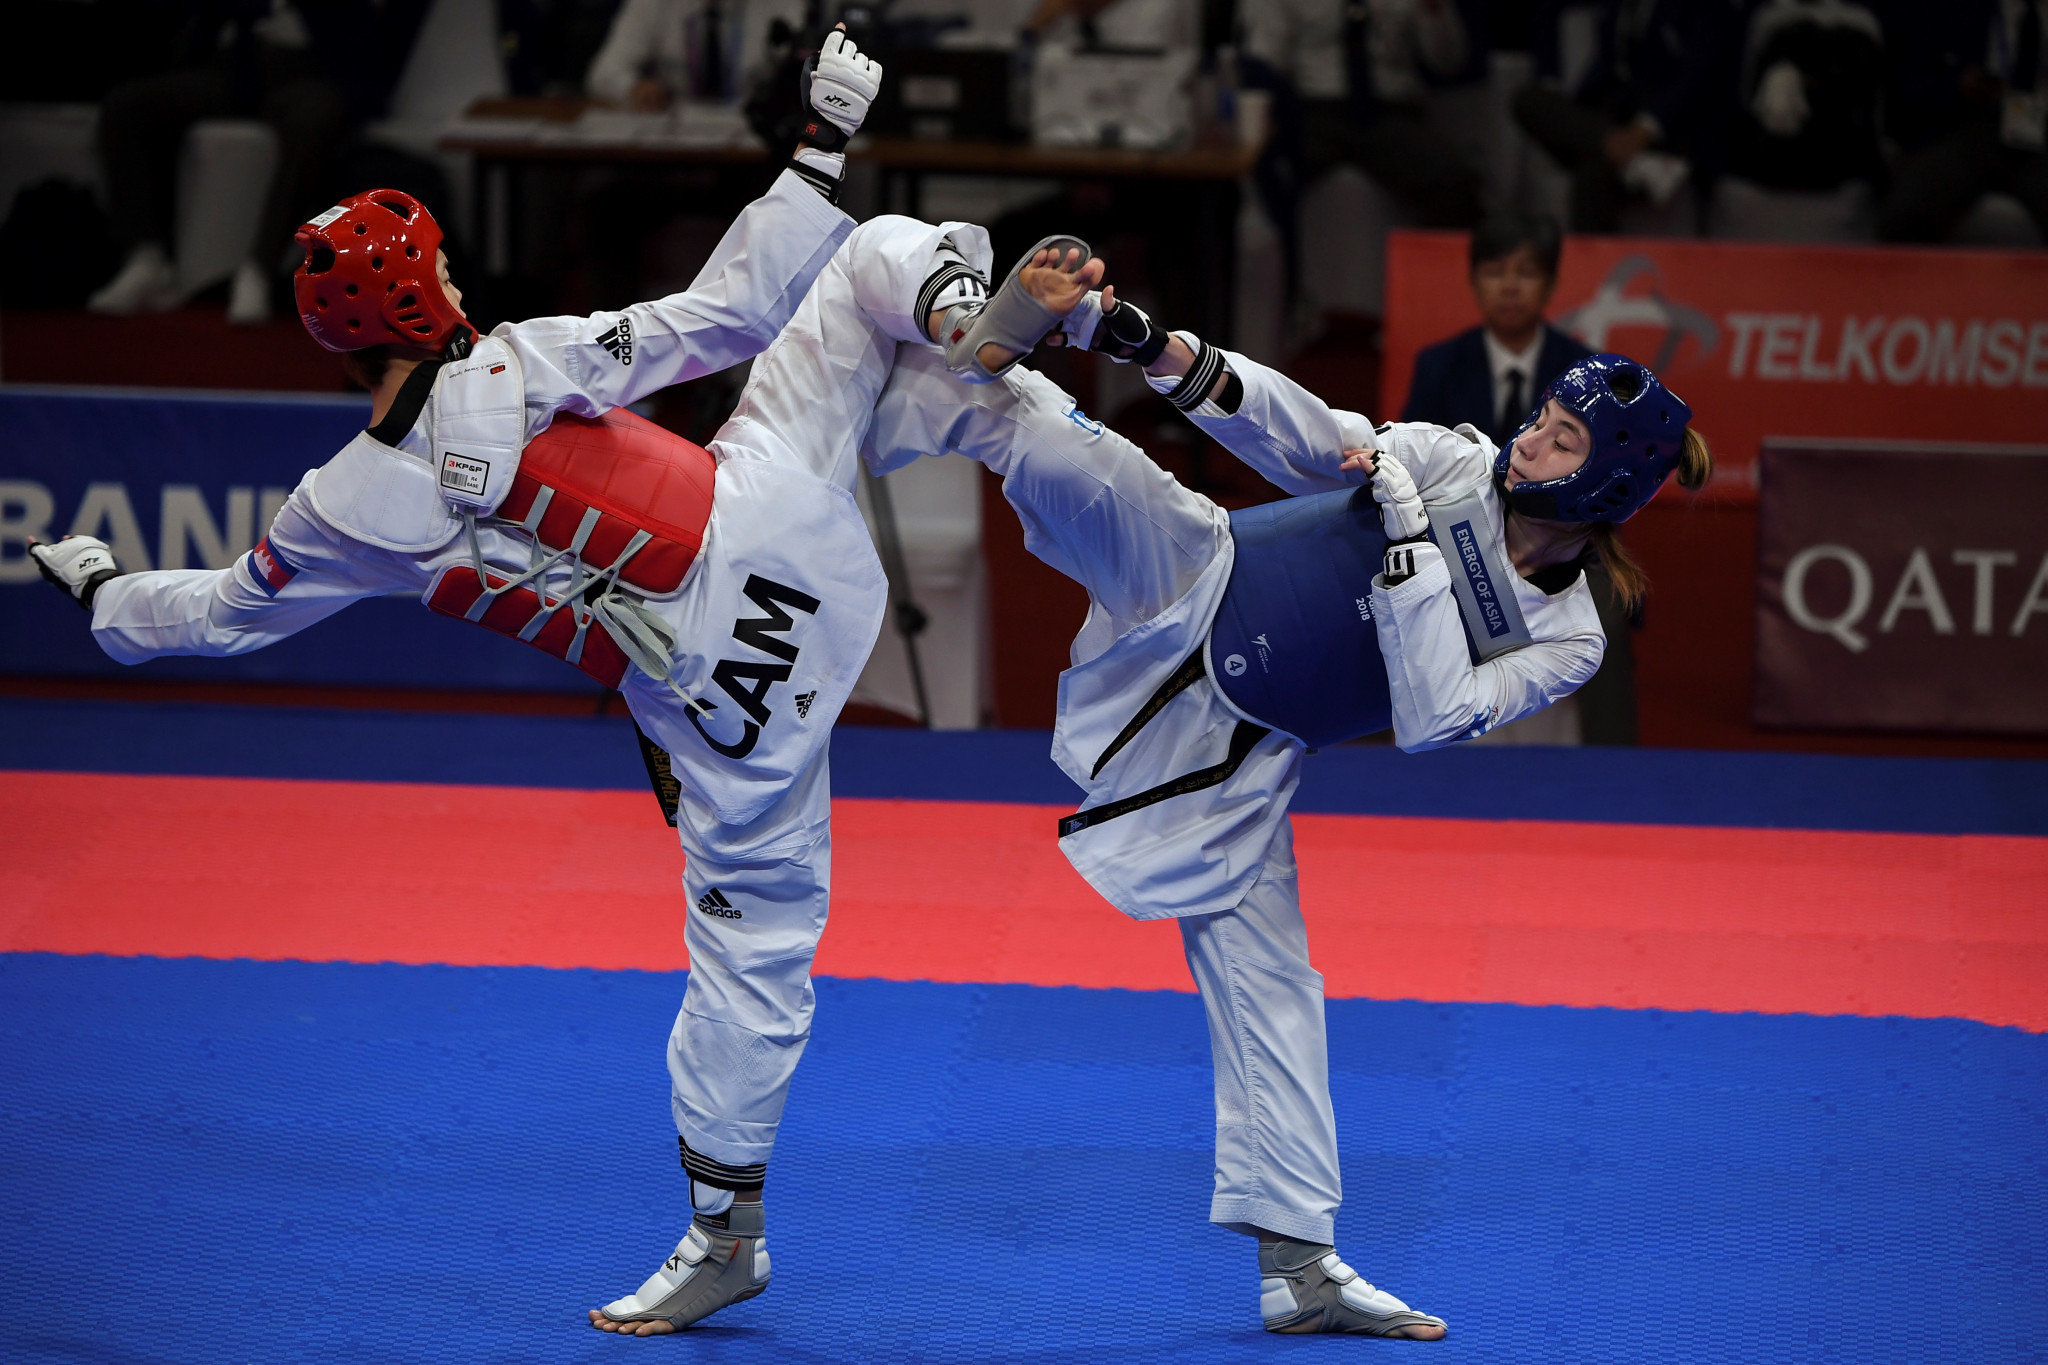 It is hoped the fund and university scholarships will help develop taekwondo in Cambodia ©Getty Images